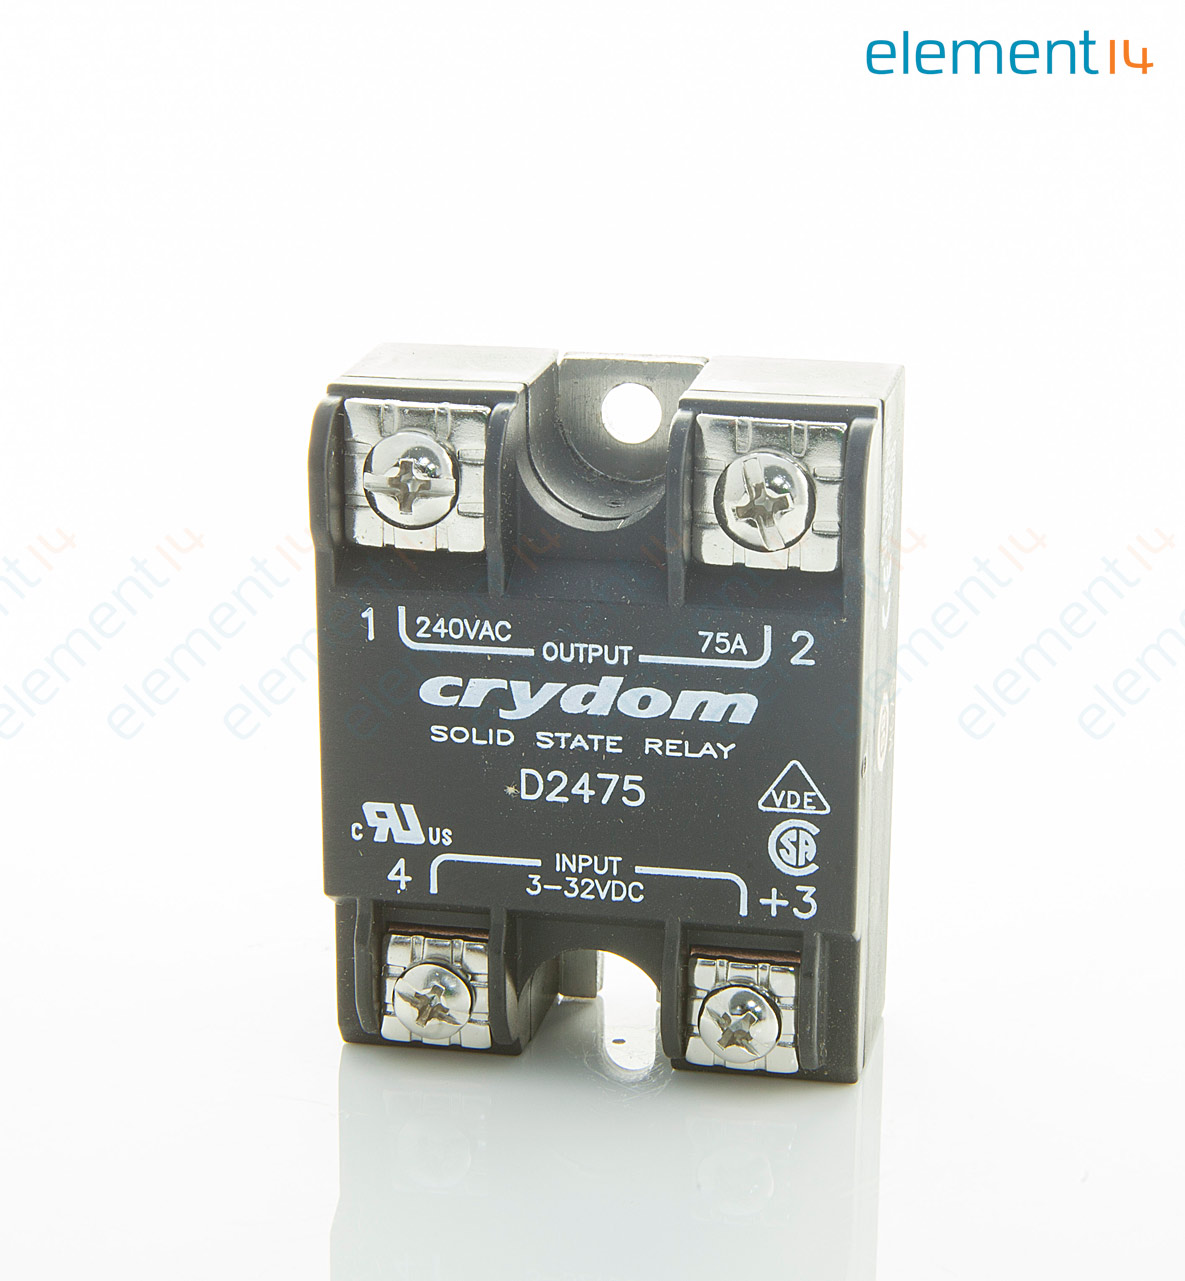 Opto 22 Ssr Wiring Diagram Library Solid State Relay Z240d10 D2475 Sensata Crydom Spst No 75 A Add To Compare